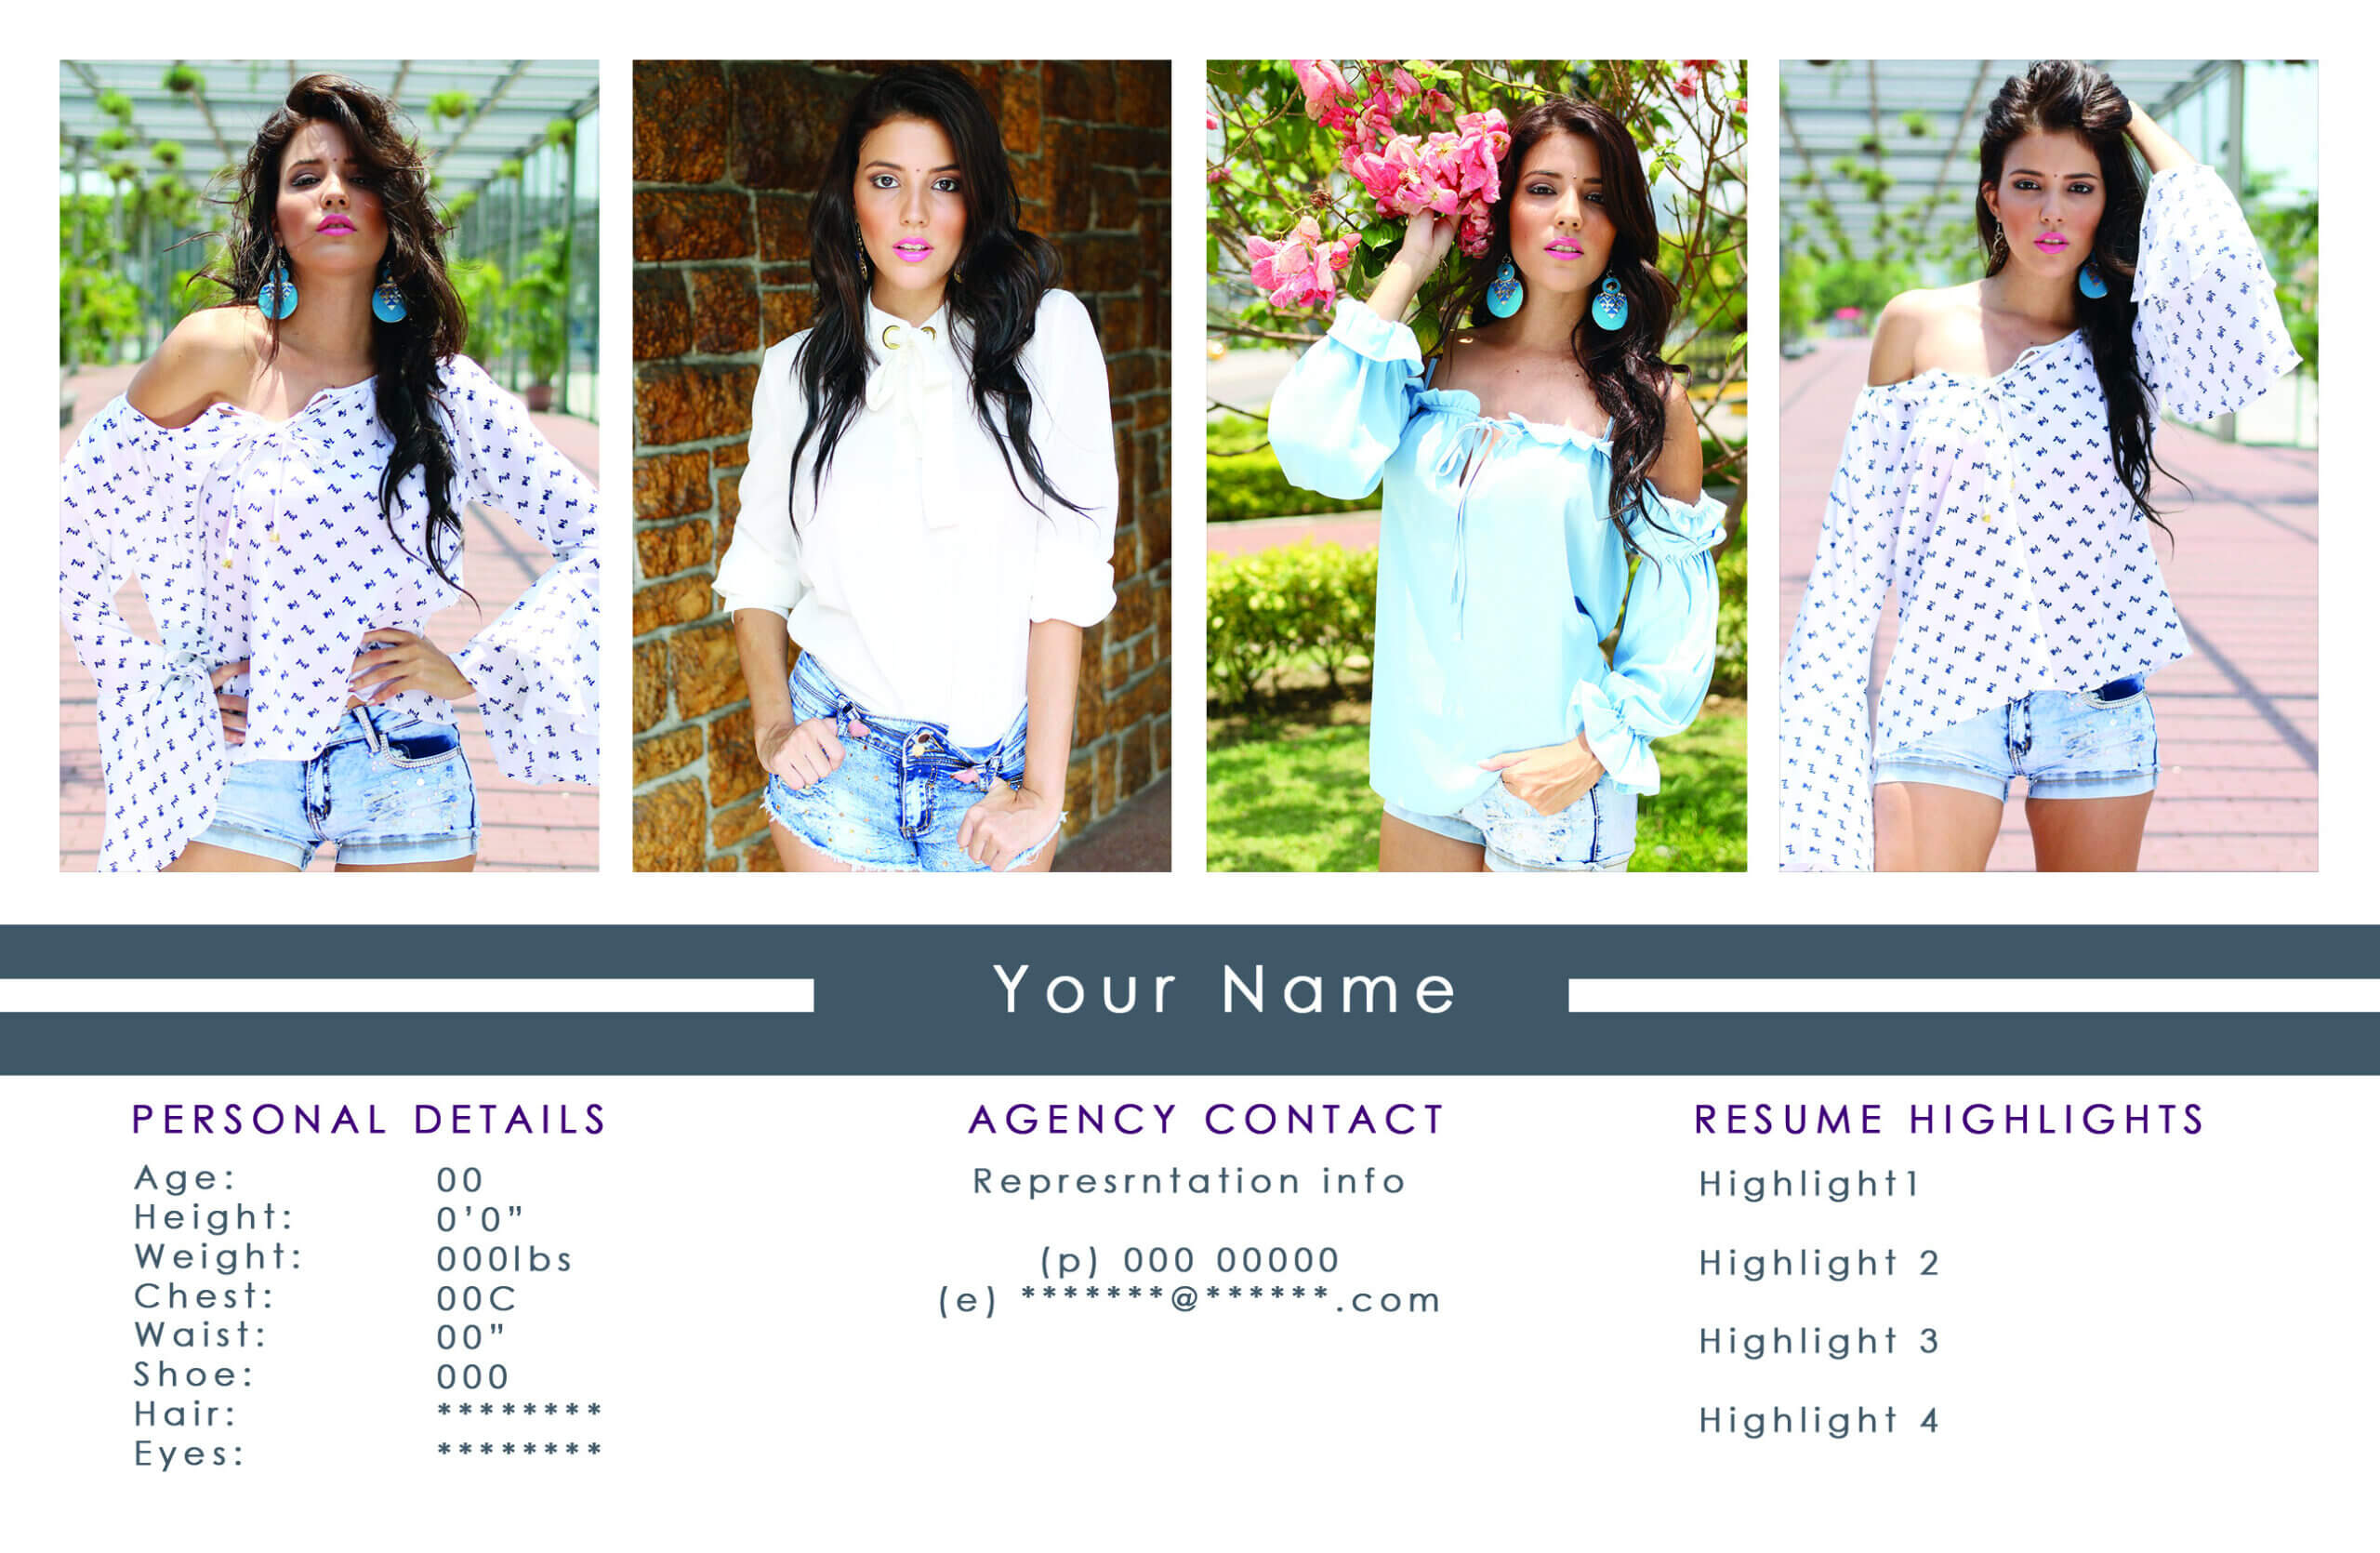 Free Comp Card Templates For Actor & Model Headshots Intended For Free Model Comp Card Template Psd